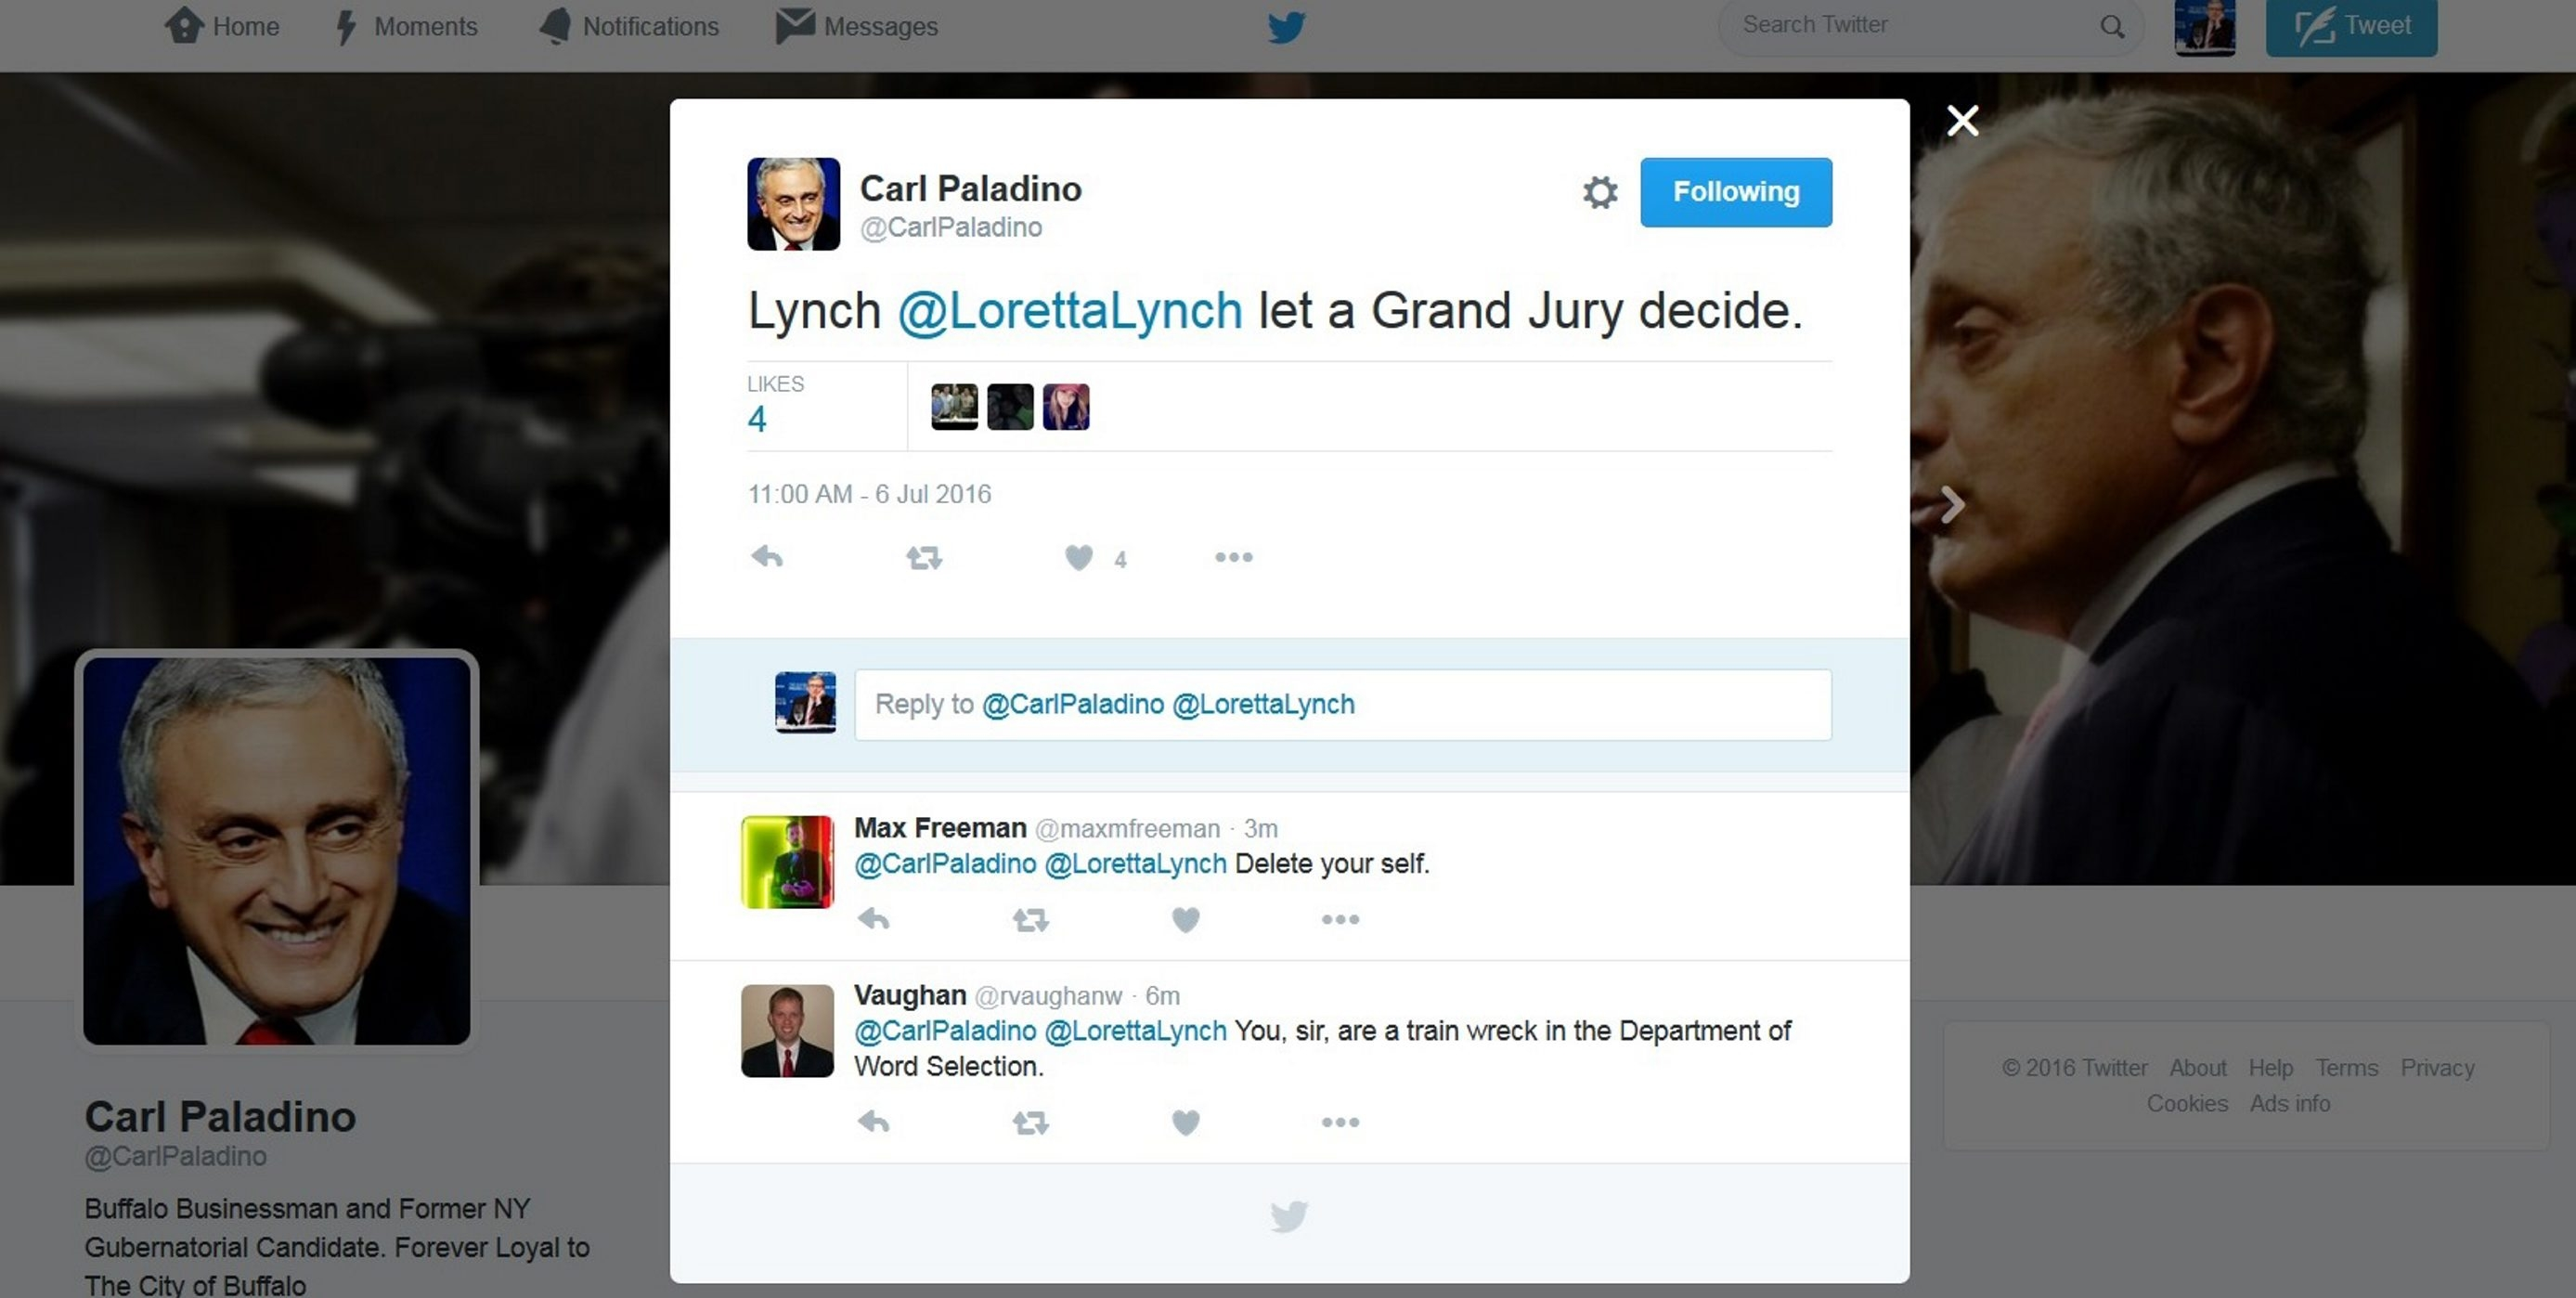 The now-deleted tweet on Carl Paladino's Twitter account.